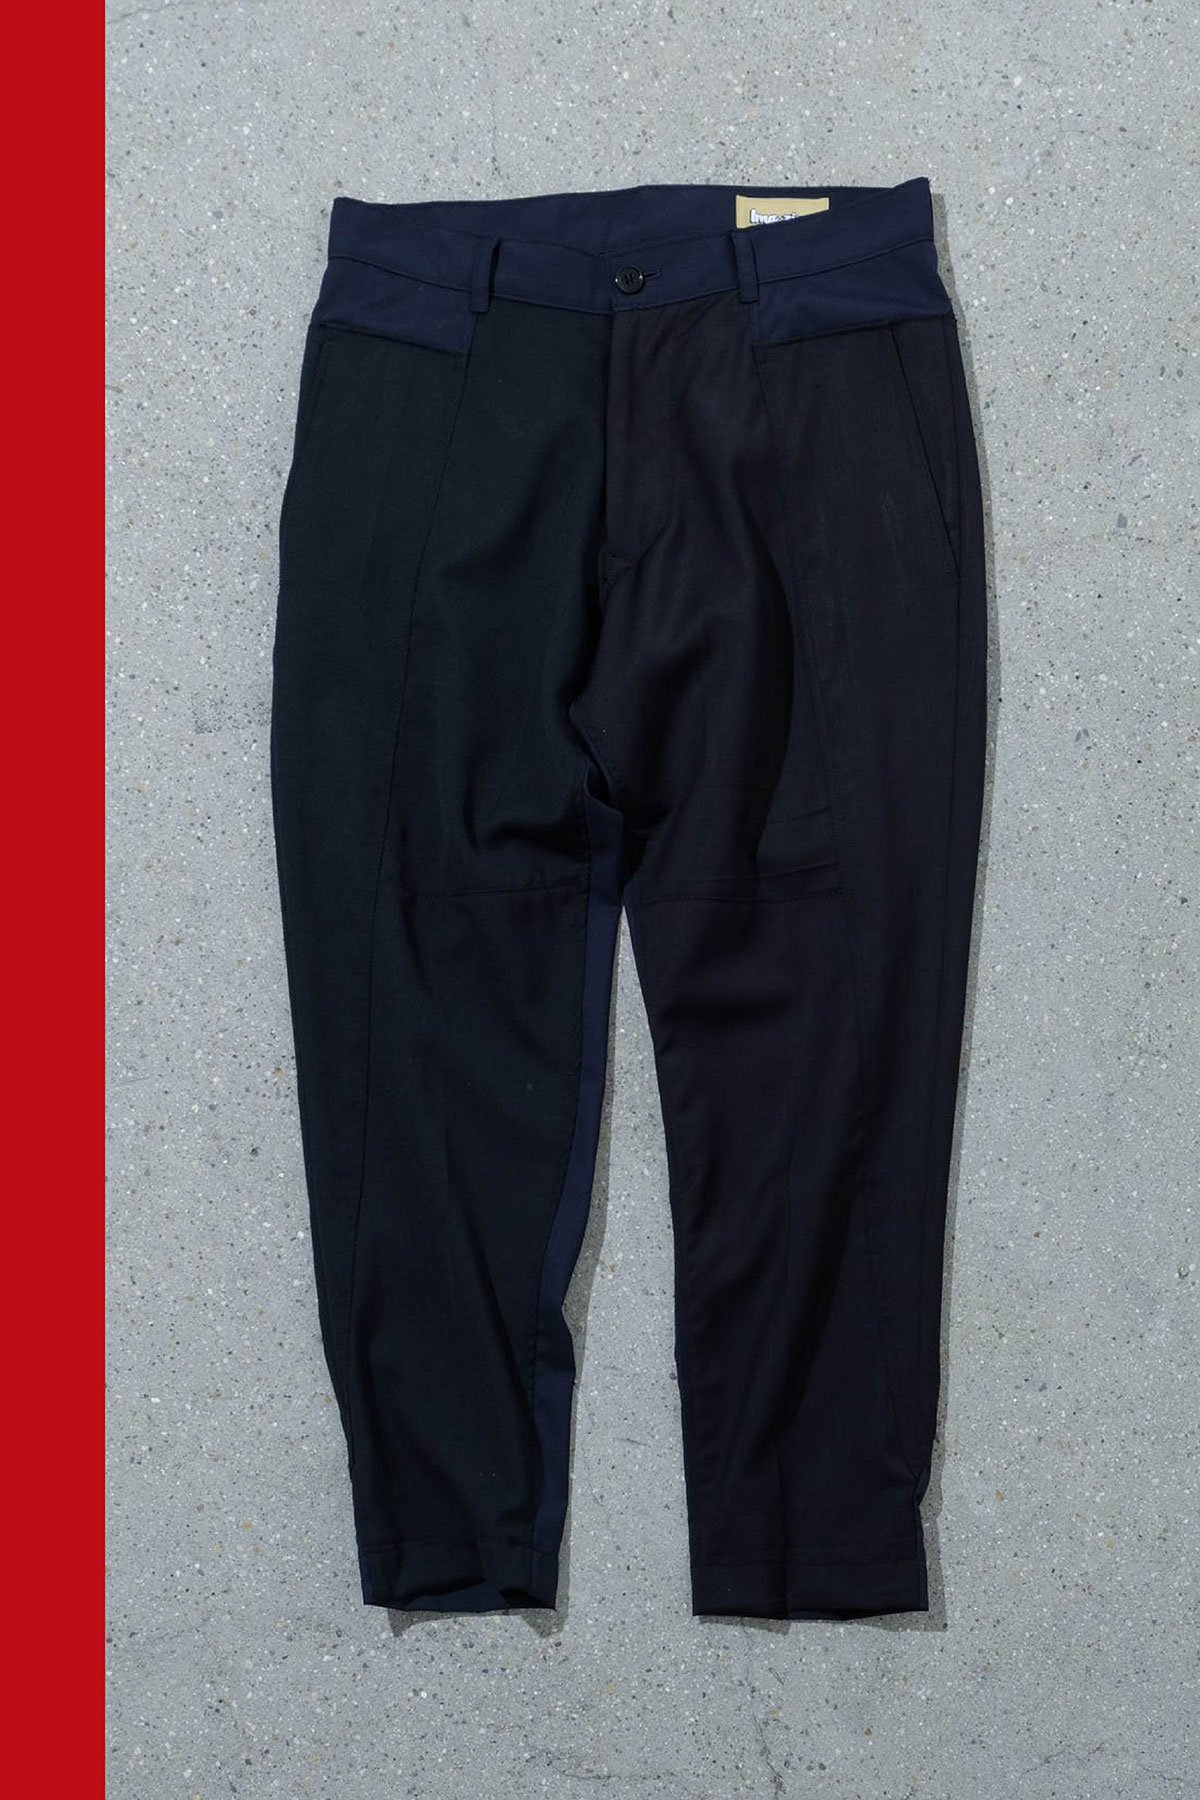 ORIGINAL MADE by IMA:ZINE / TAPERED SLACKS(NAVY × NAVY)